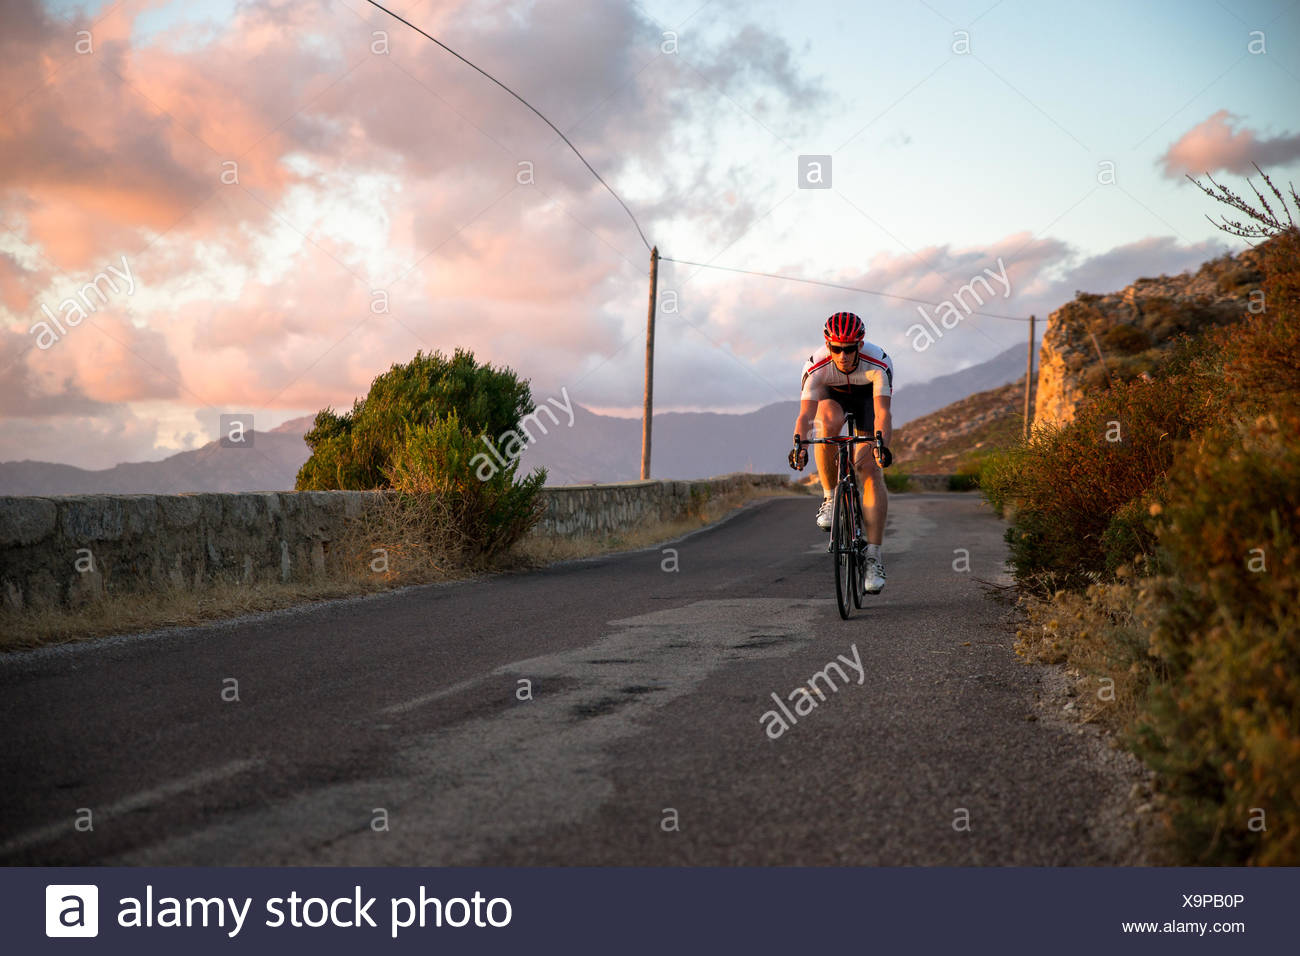 France, Corsica, Road cycling above sea at sunset - Stock Image